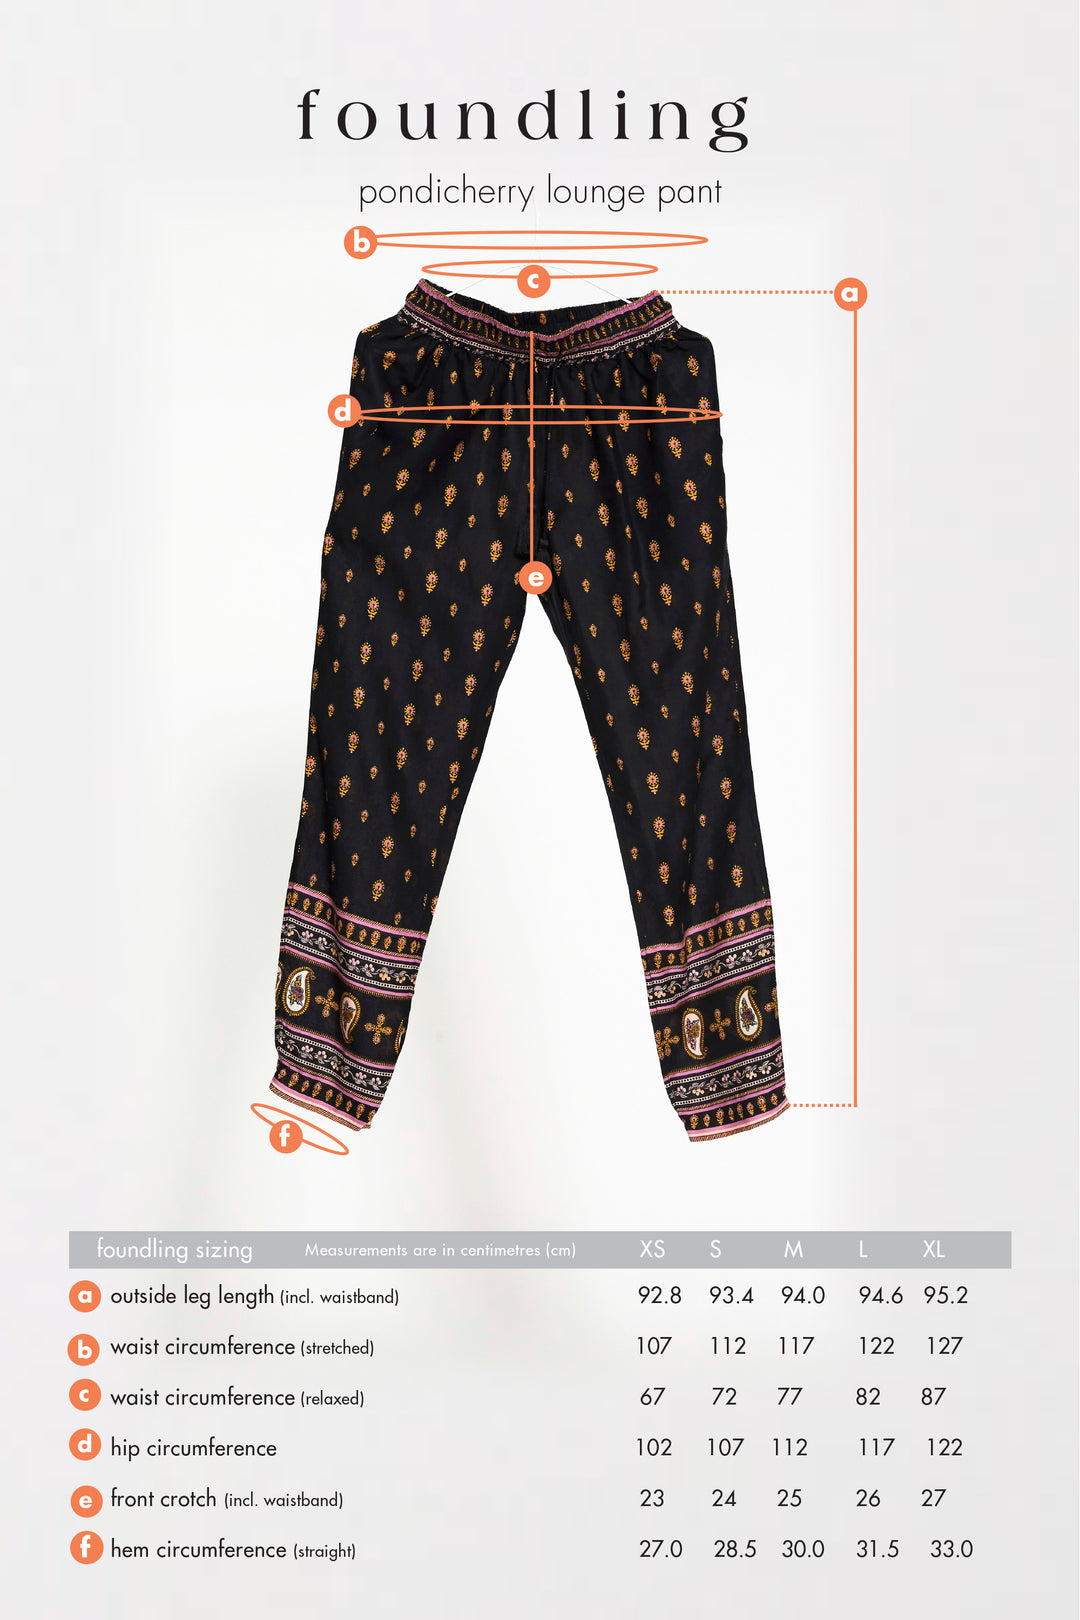 Pondicherry Lounge Pant